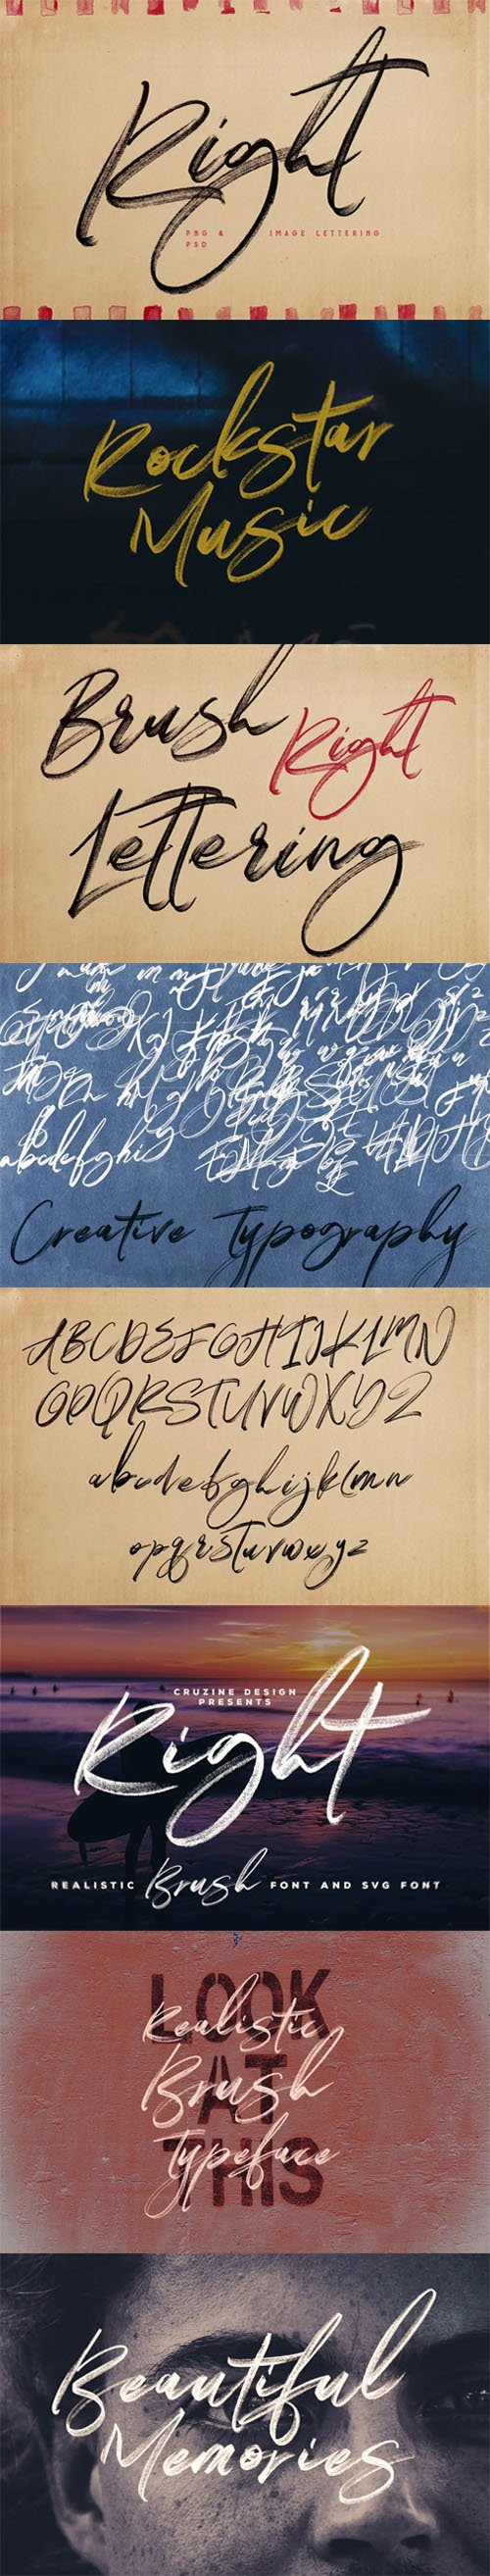 Right Brush Lettering - All Letters PSD Template